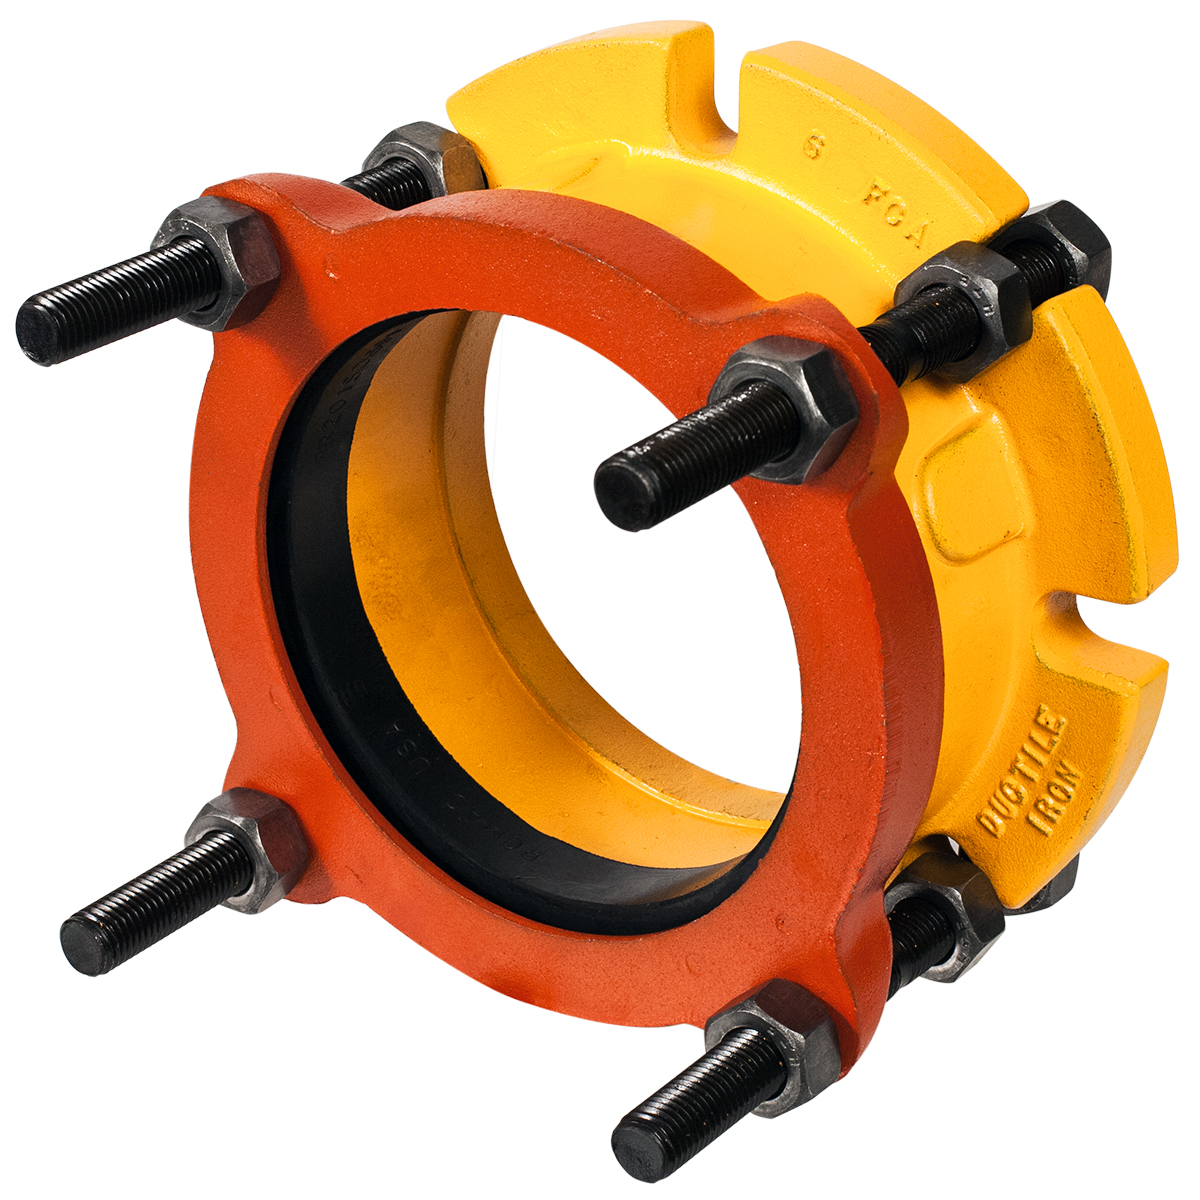 FCA501 - Ductile iron flanged coupling adapter.